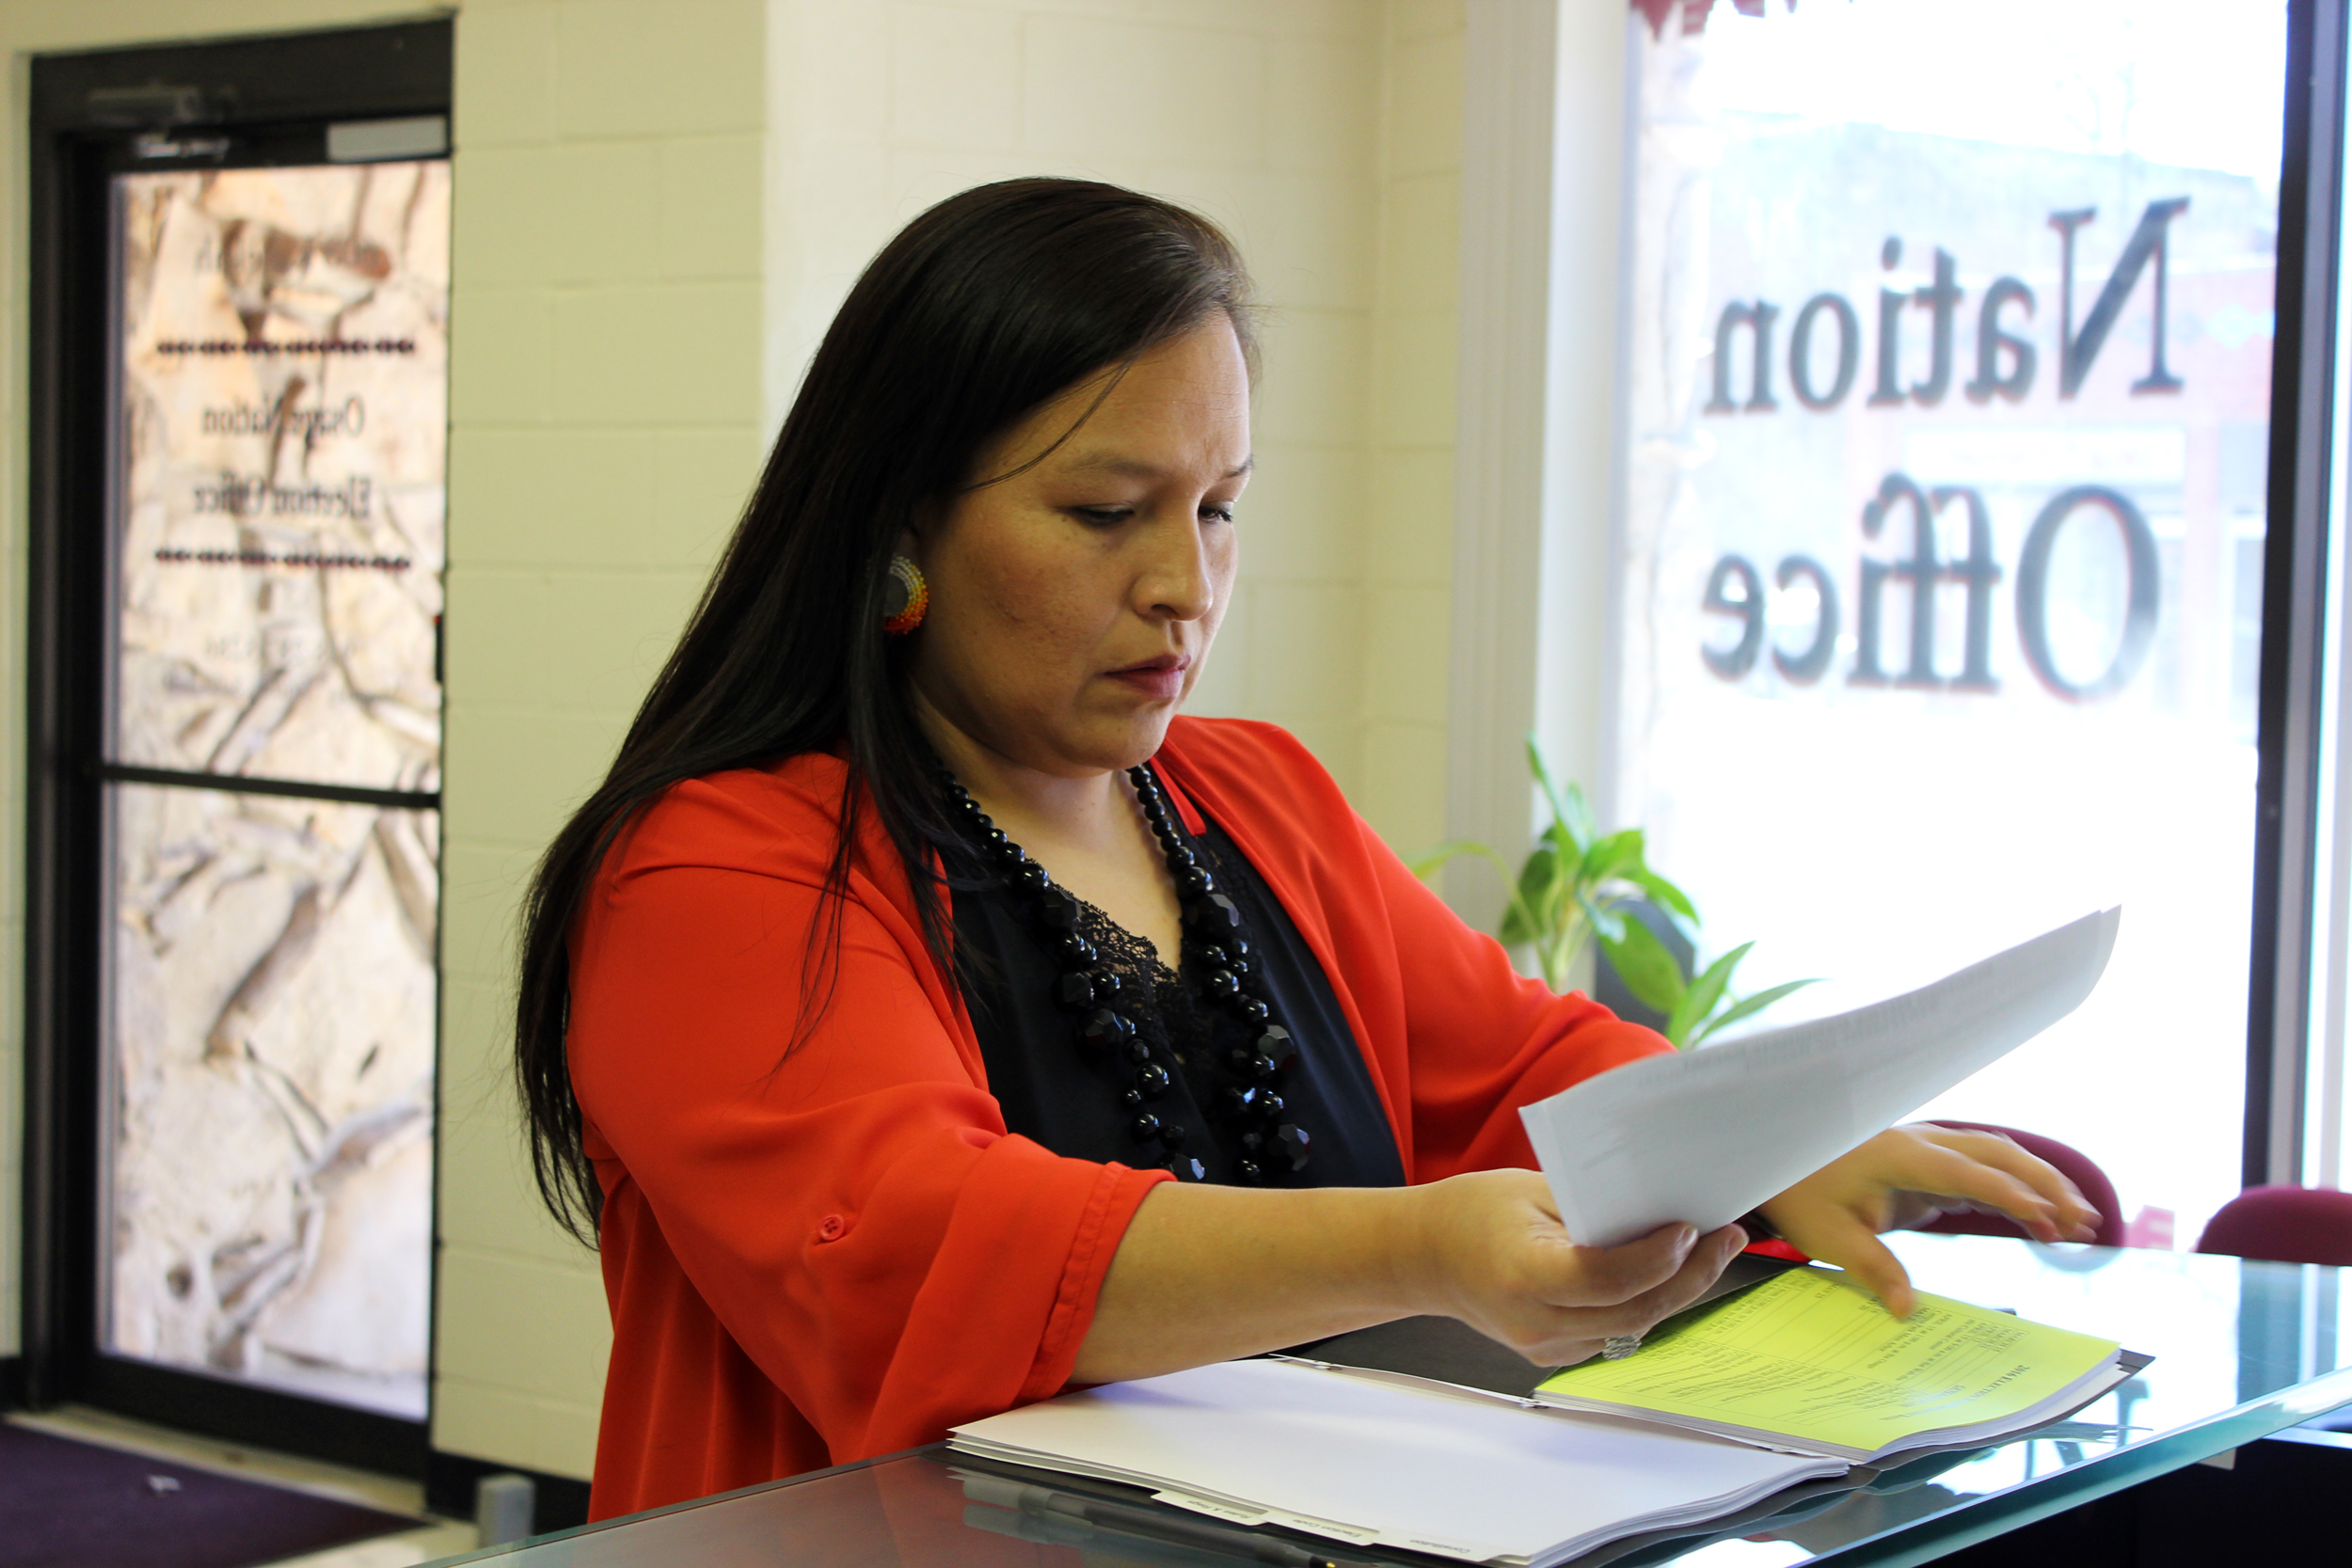 W. Jacque Jones is second tribal member to file candidacy